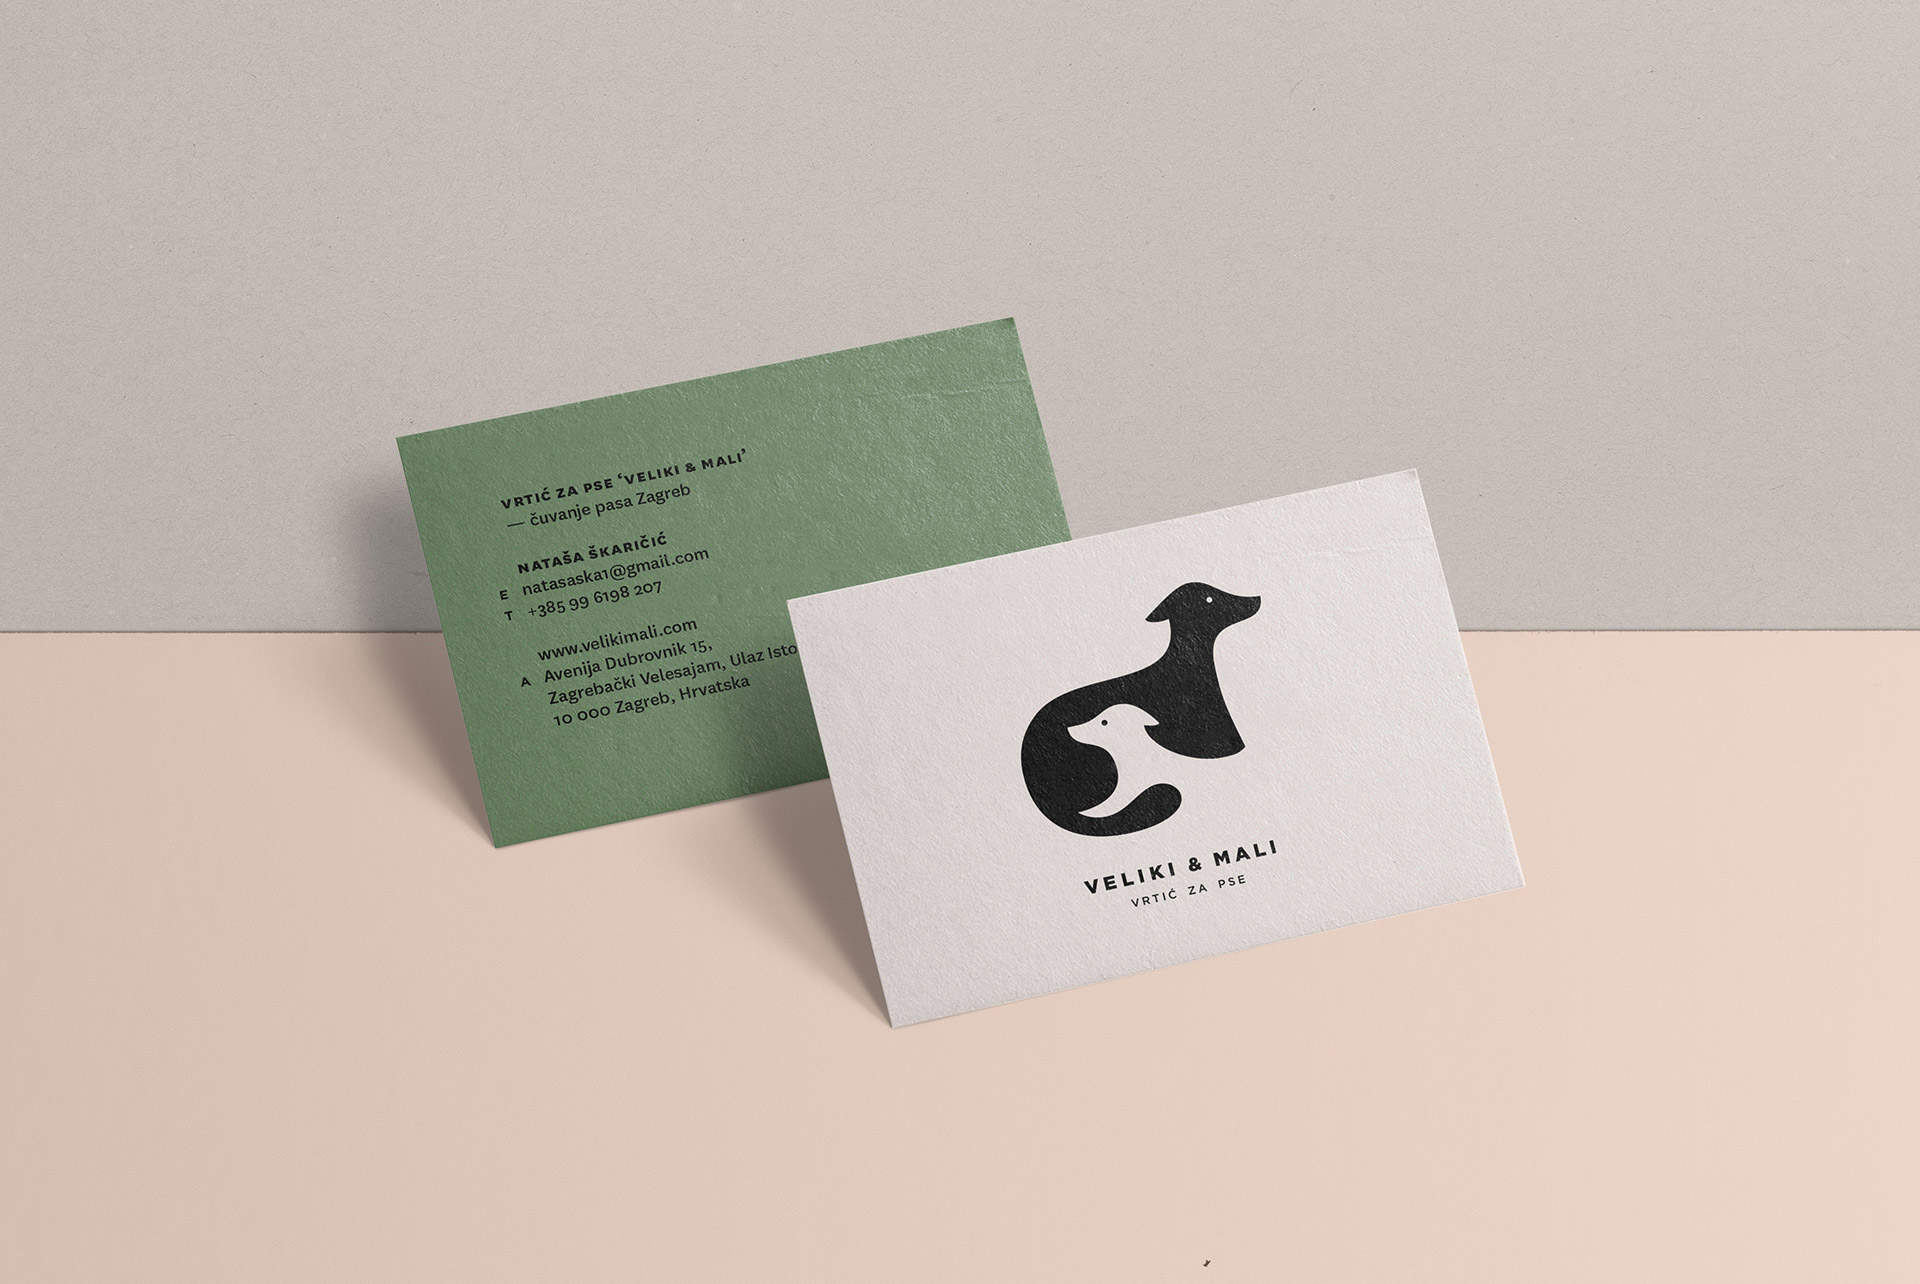 Bigandsmall_business_cards